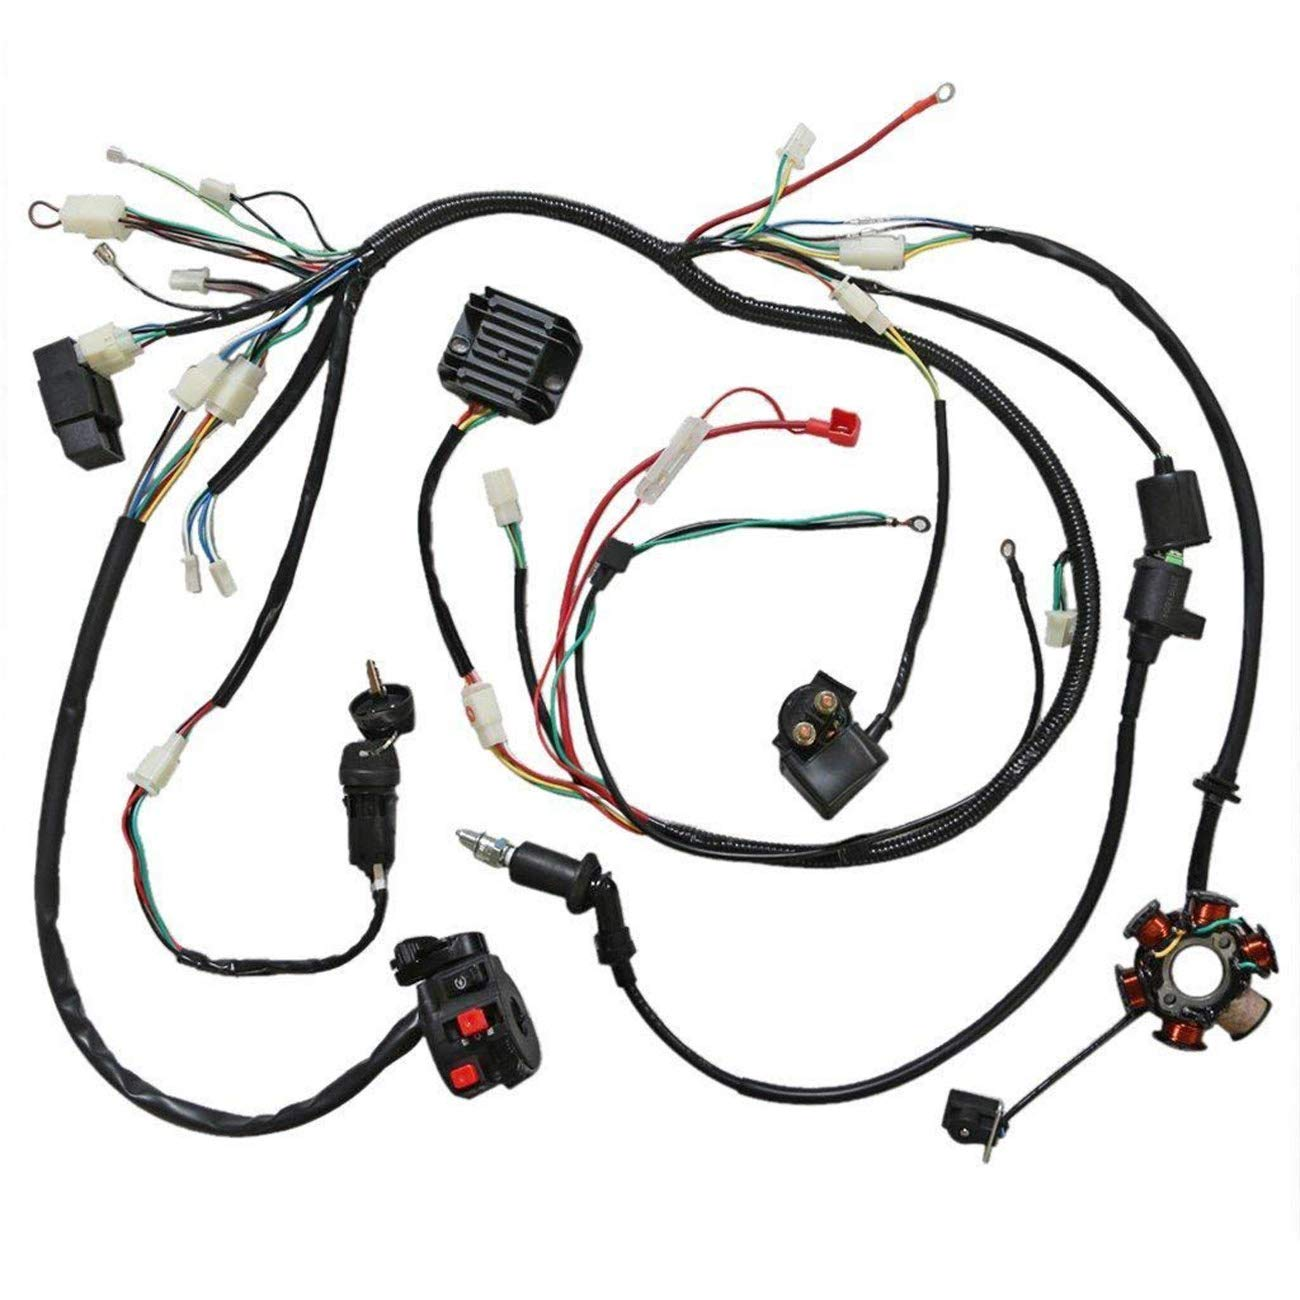 Jcmoto Wiring Harness Loom Kit Cdi Rectifier Key Gy6 Diagram Ignition Coil Magneto Stator For 125cc 150cc 250cc Atv Quad Scooter Automotive